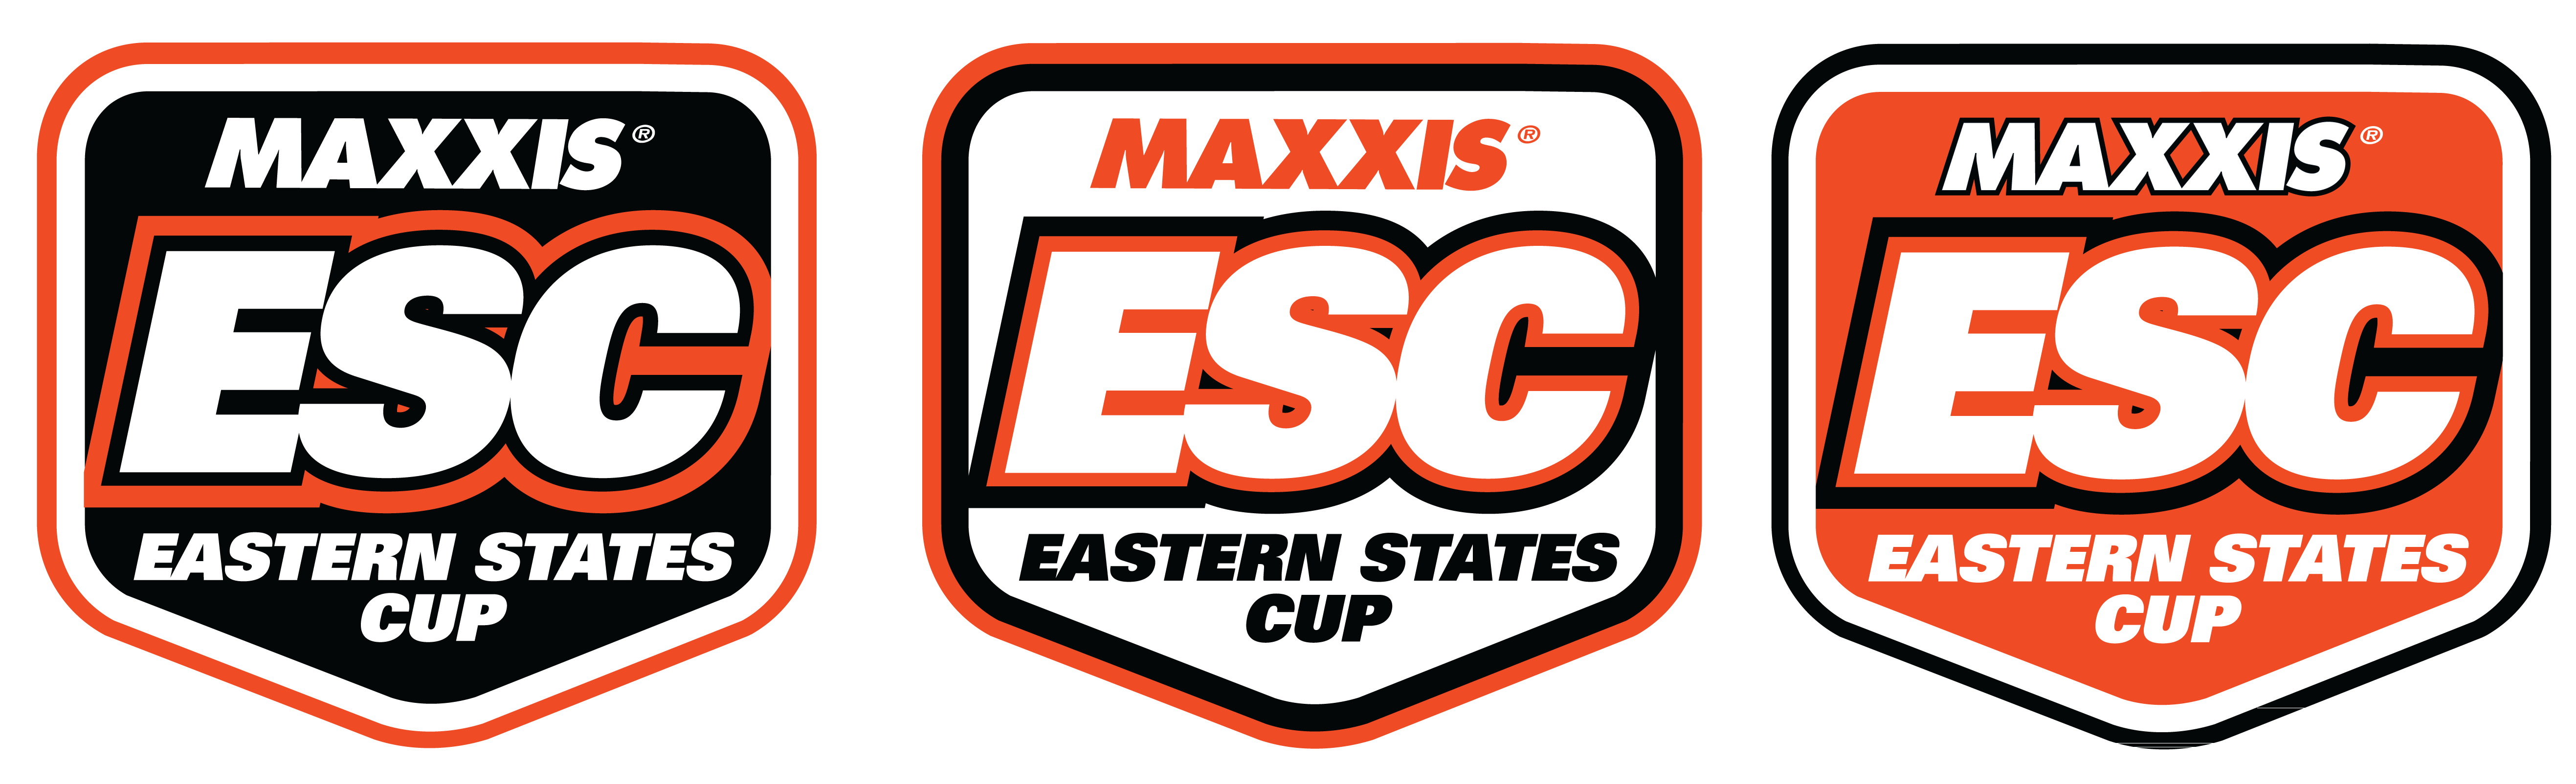 MAXXIS Eastern States Cup presented by CLIF